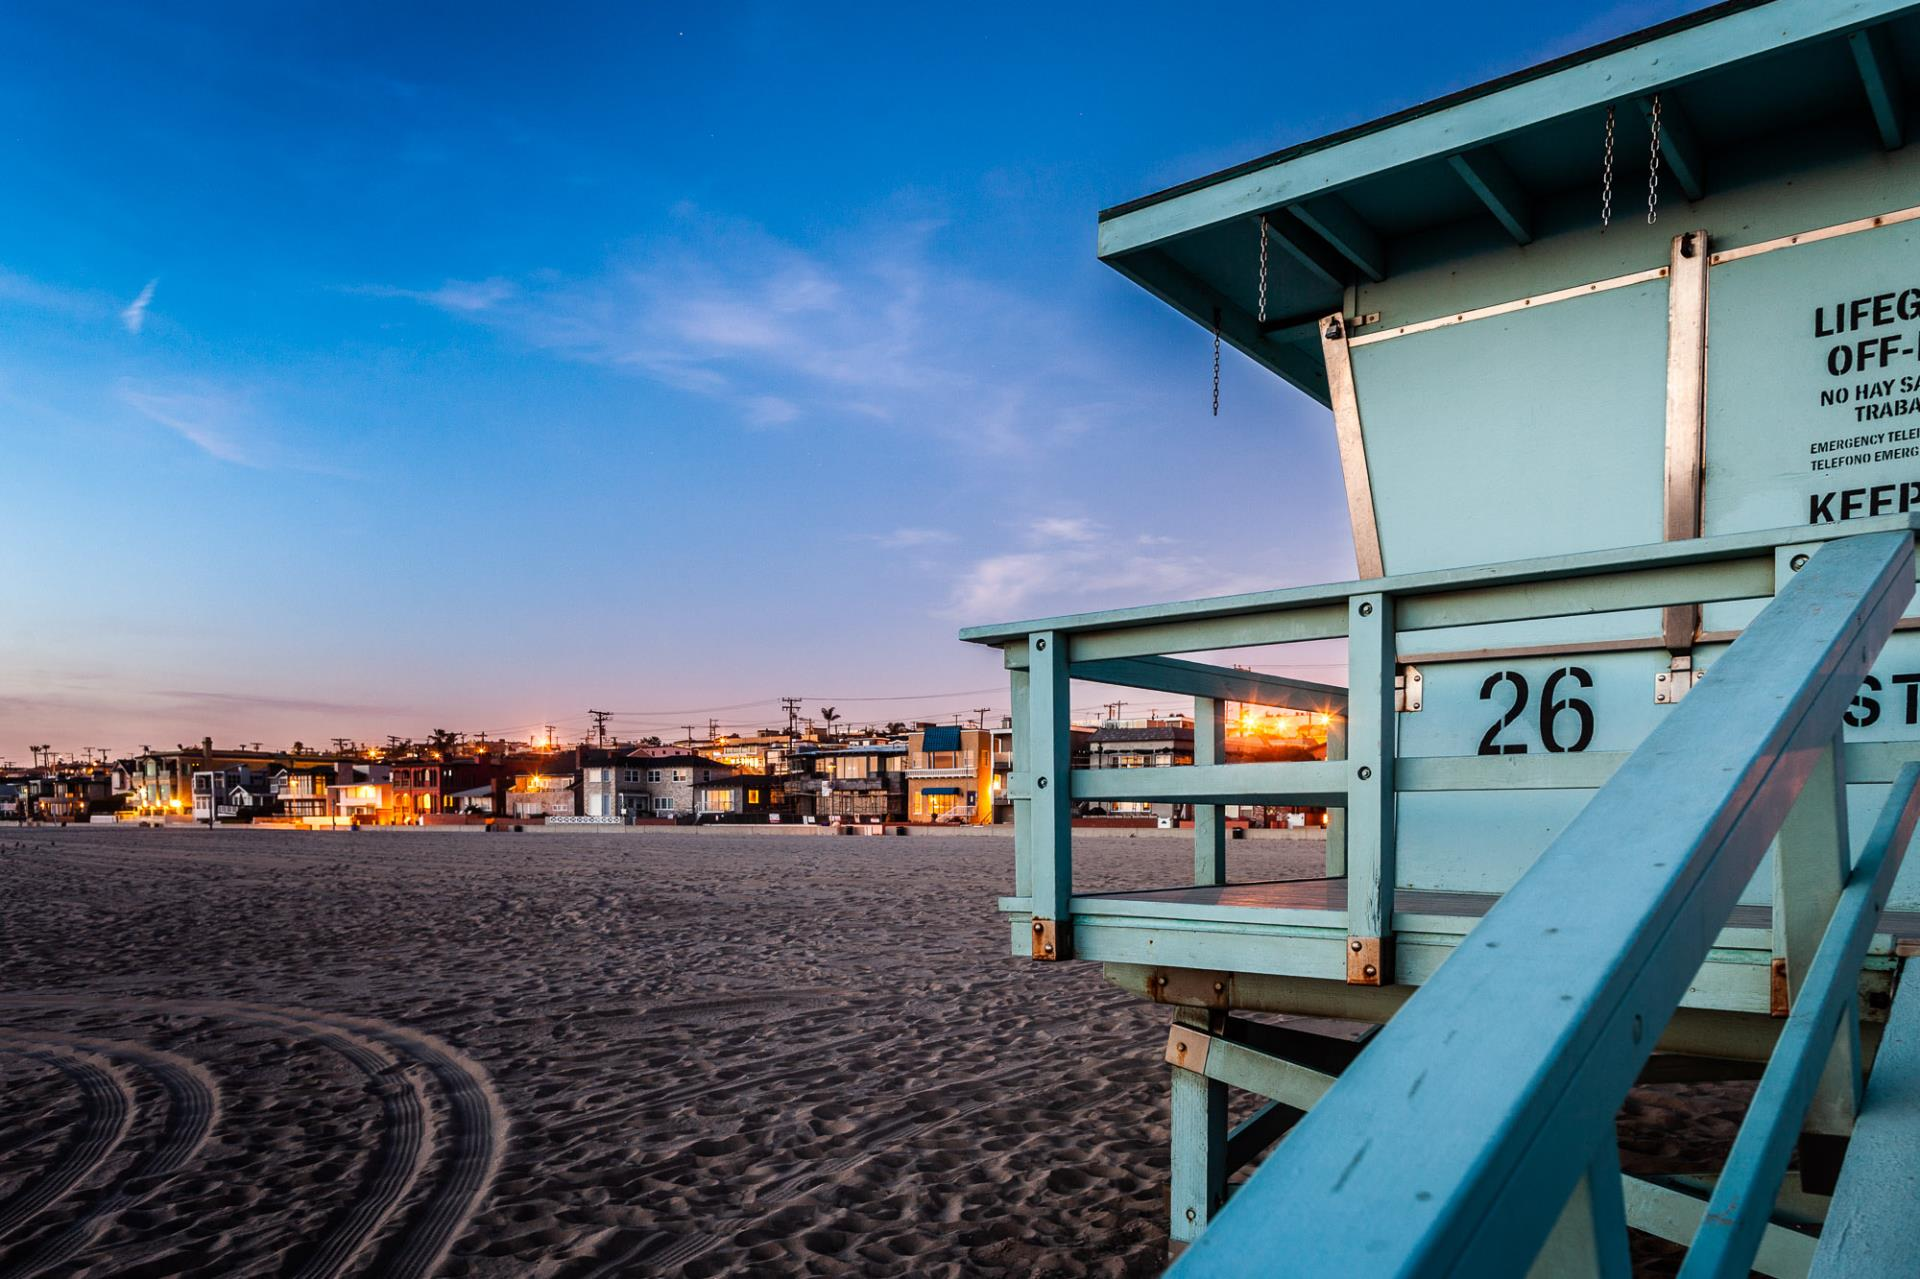 A Letter to the Community from Hermosa Beach City Manager Suja Lowenthal